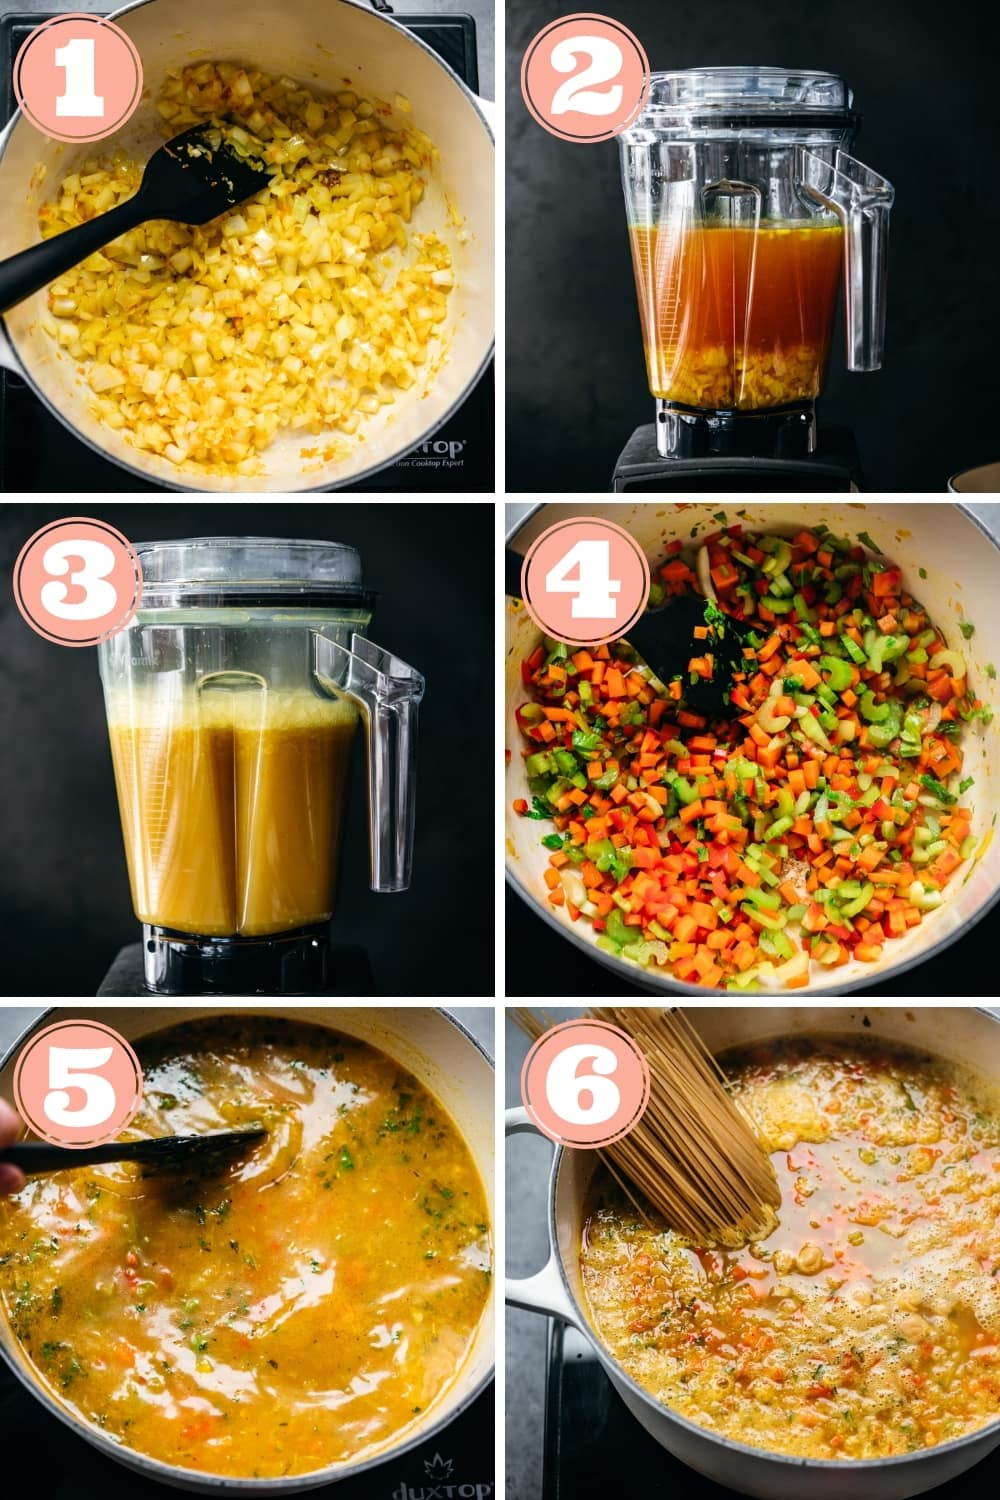 steps 1 through 6 for making turmeric ginger chickpea noodle soup.